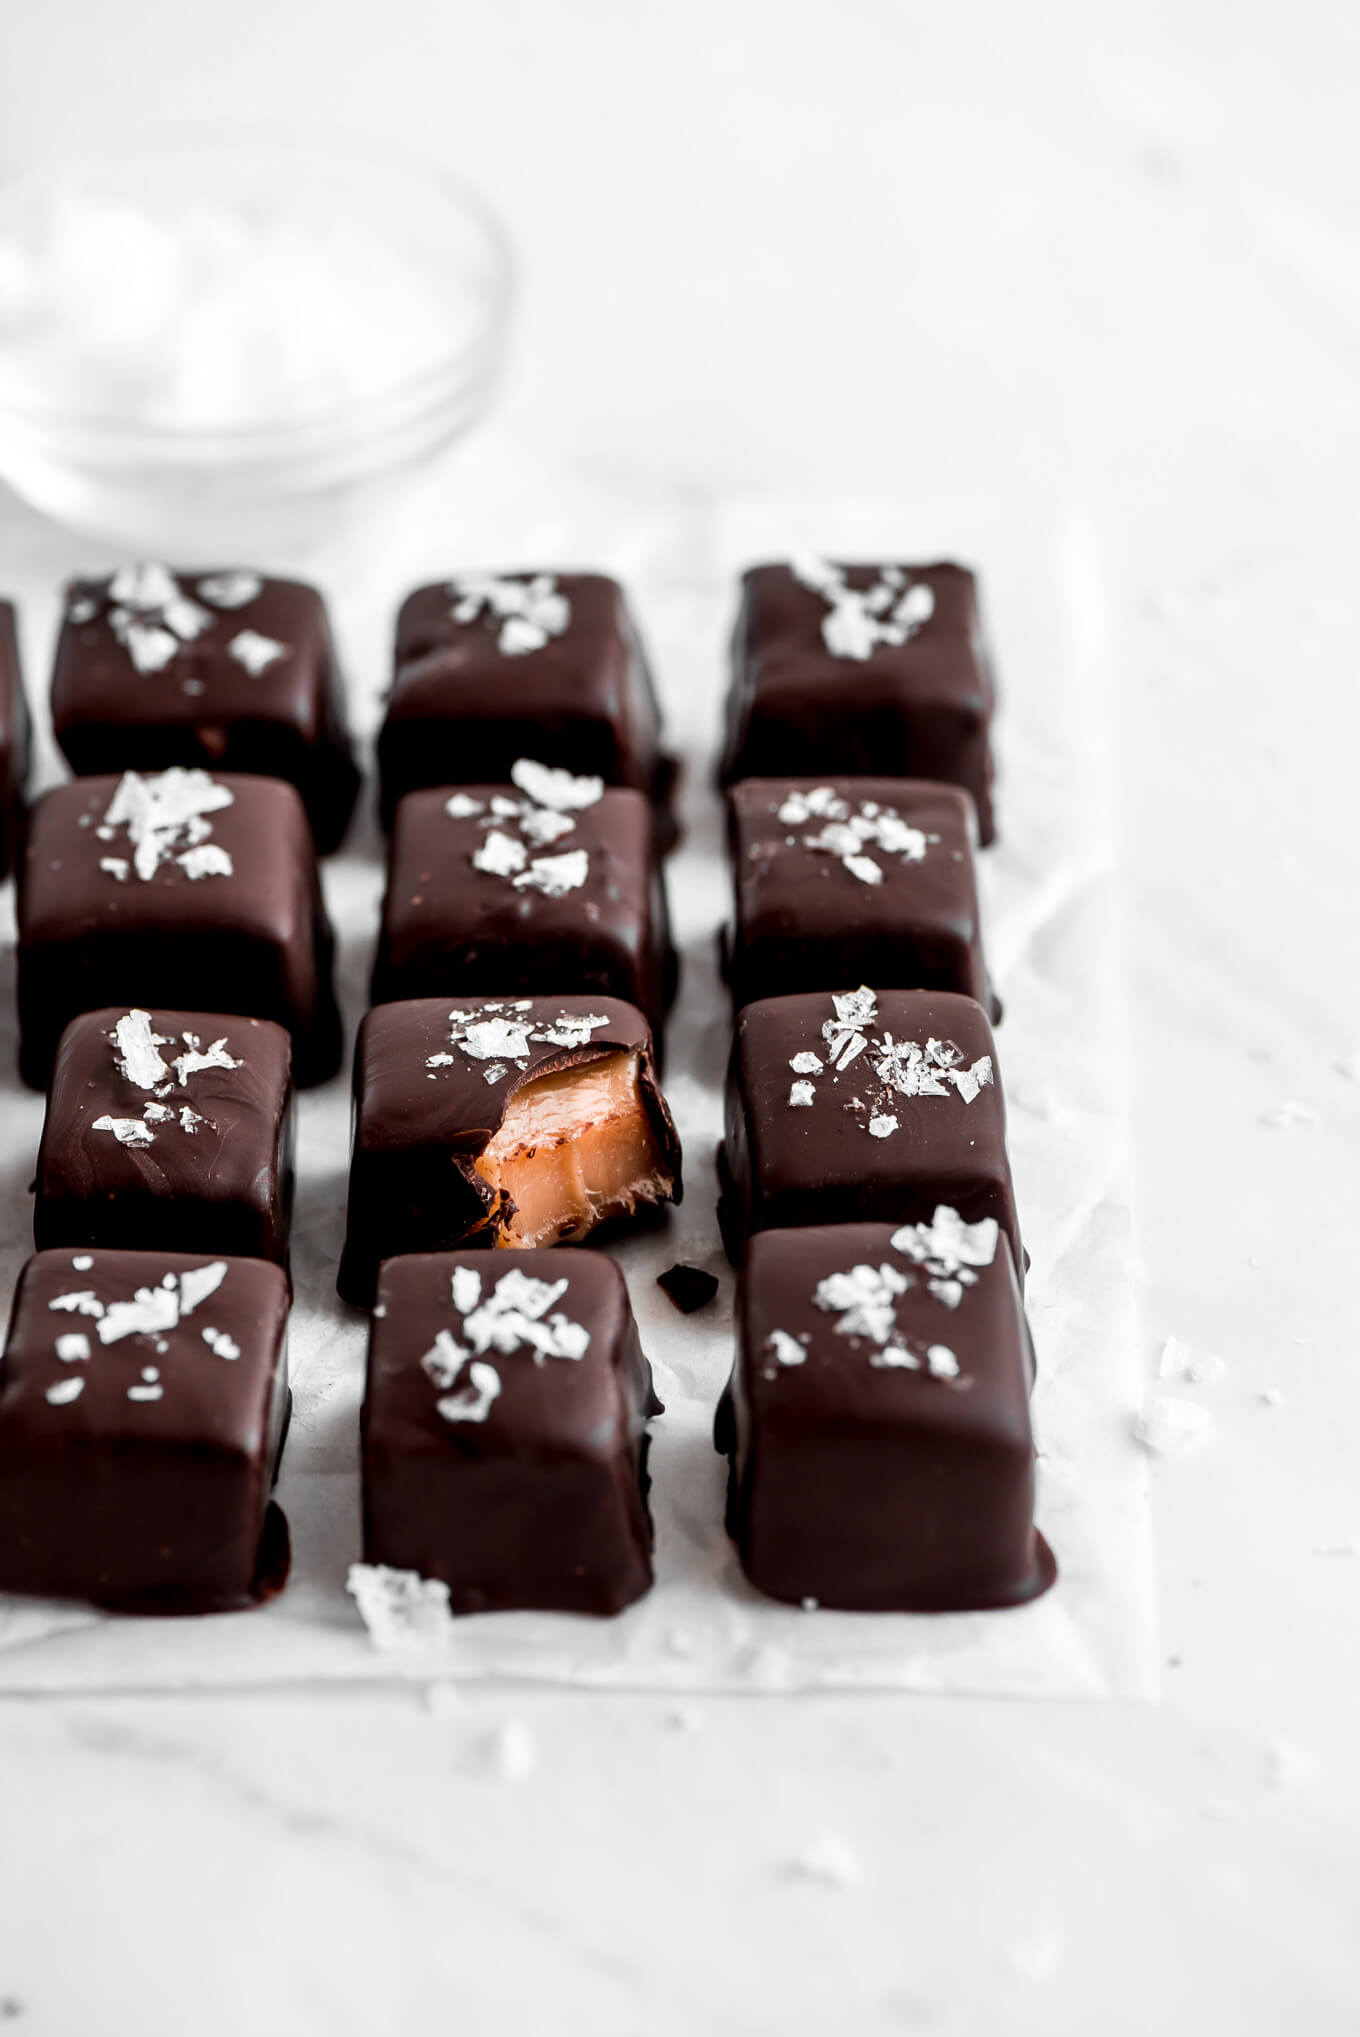 Chocolates with sea salt on top in rows on a parchment paper.